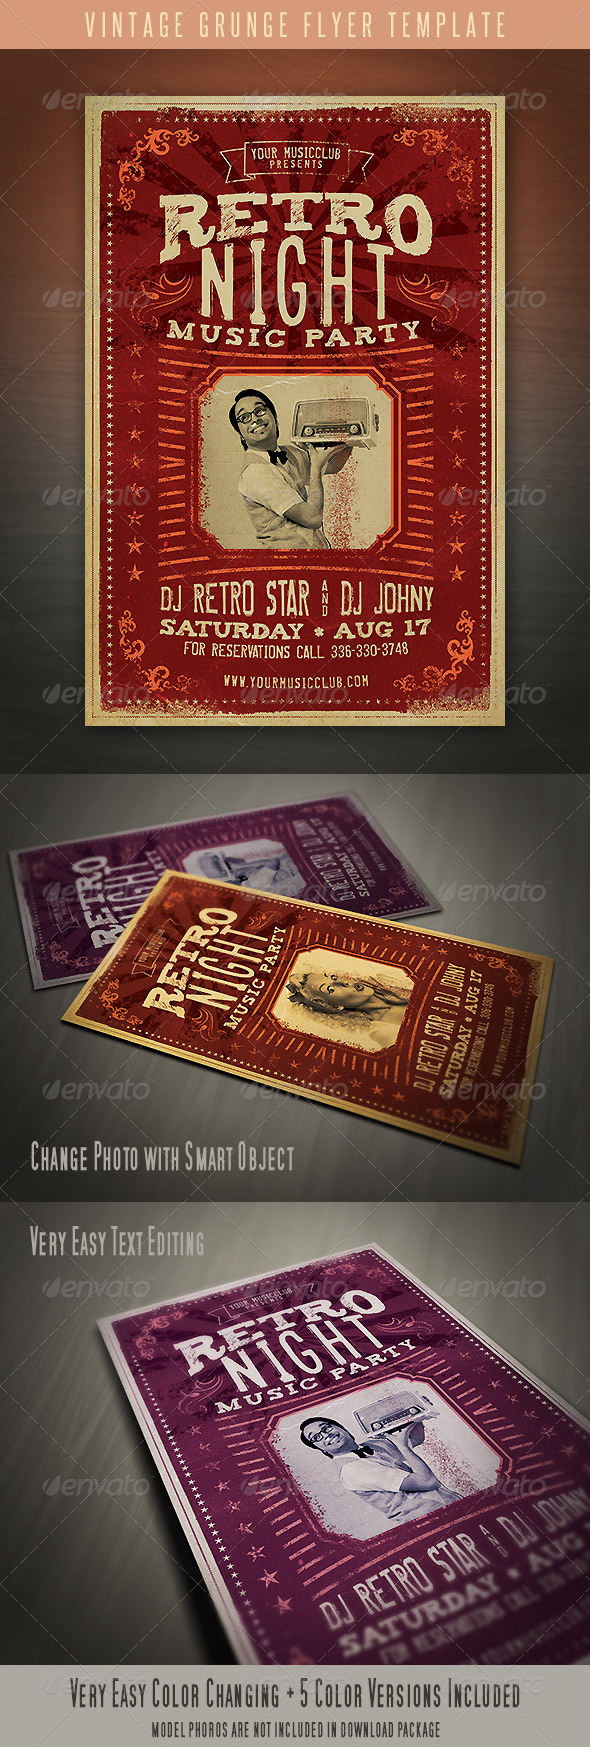 GraphicRiver Vintage Grunge Flyer 4605437